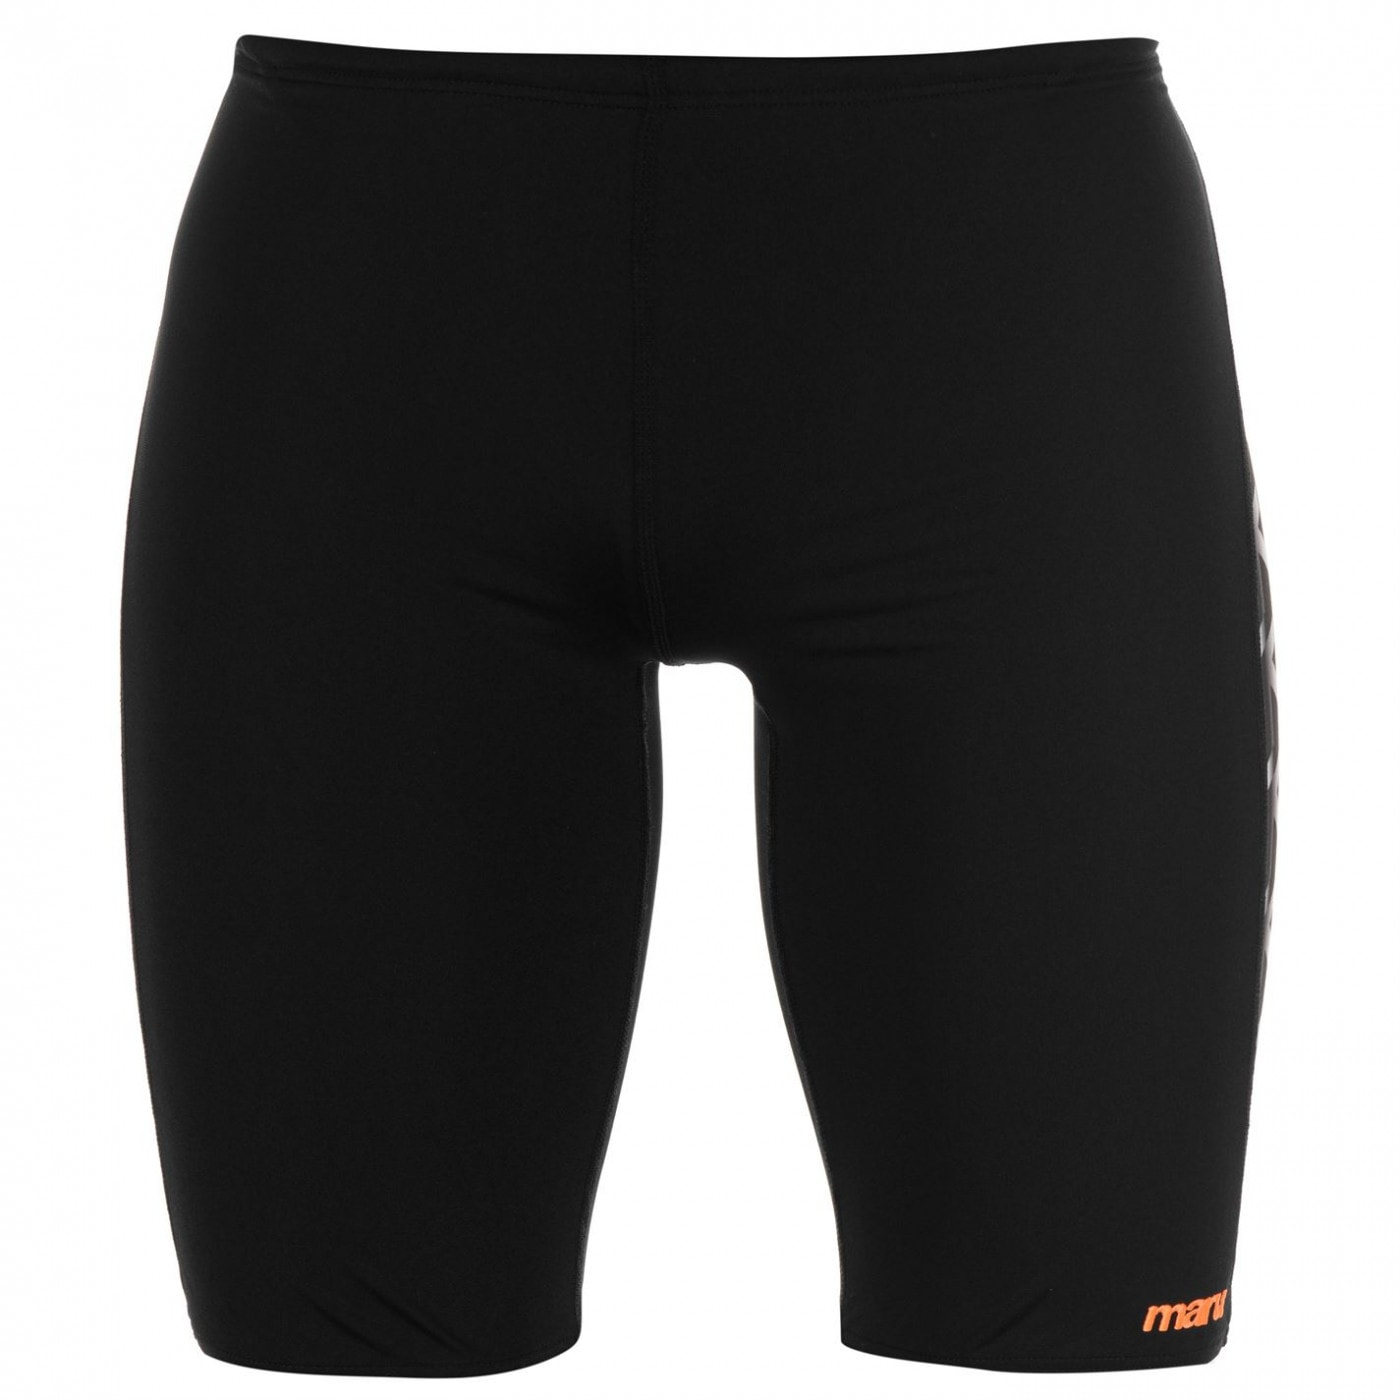 Maru Panel Jammers Mens